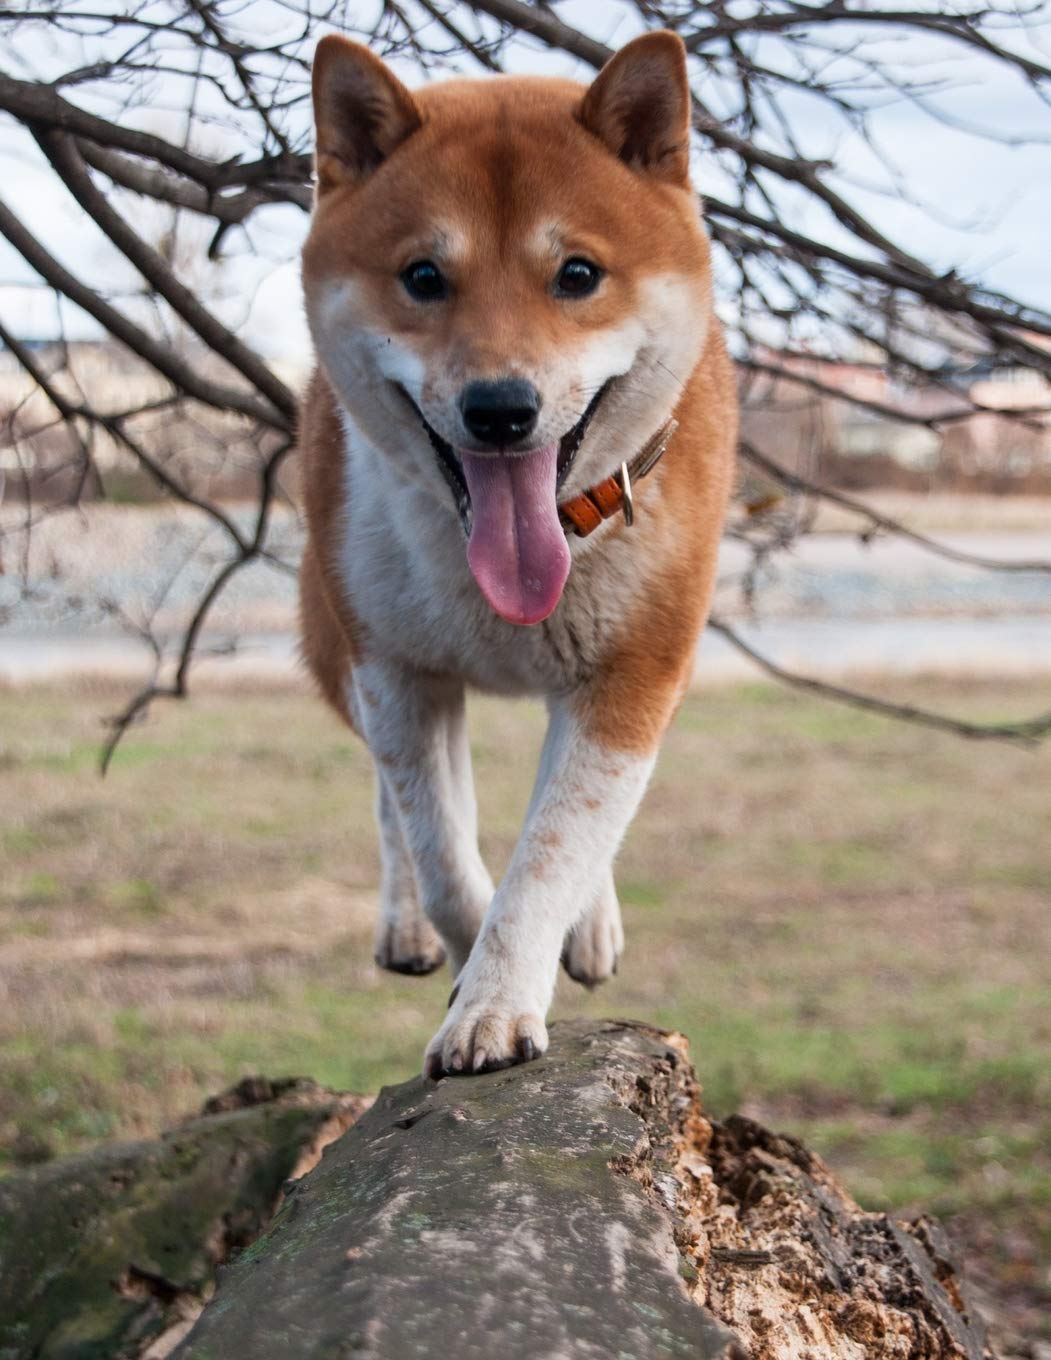 Buy Notebook: Shiba Inu dog branch frontal shiba inu pet puppy puppies dogs  breed training toys bed collar Book Online at Low Prices in India |  Notebook: Shiba Inu dog branch frontal